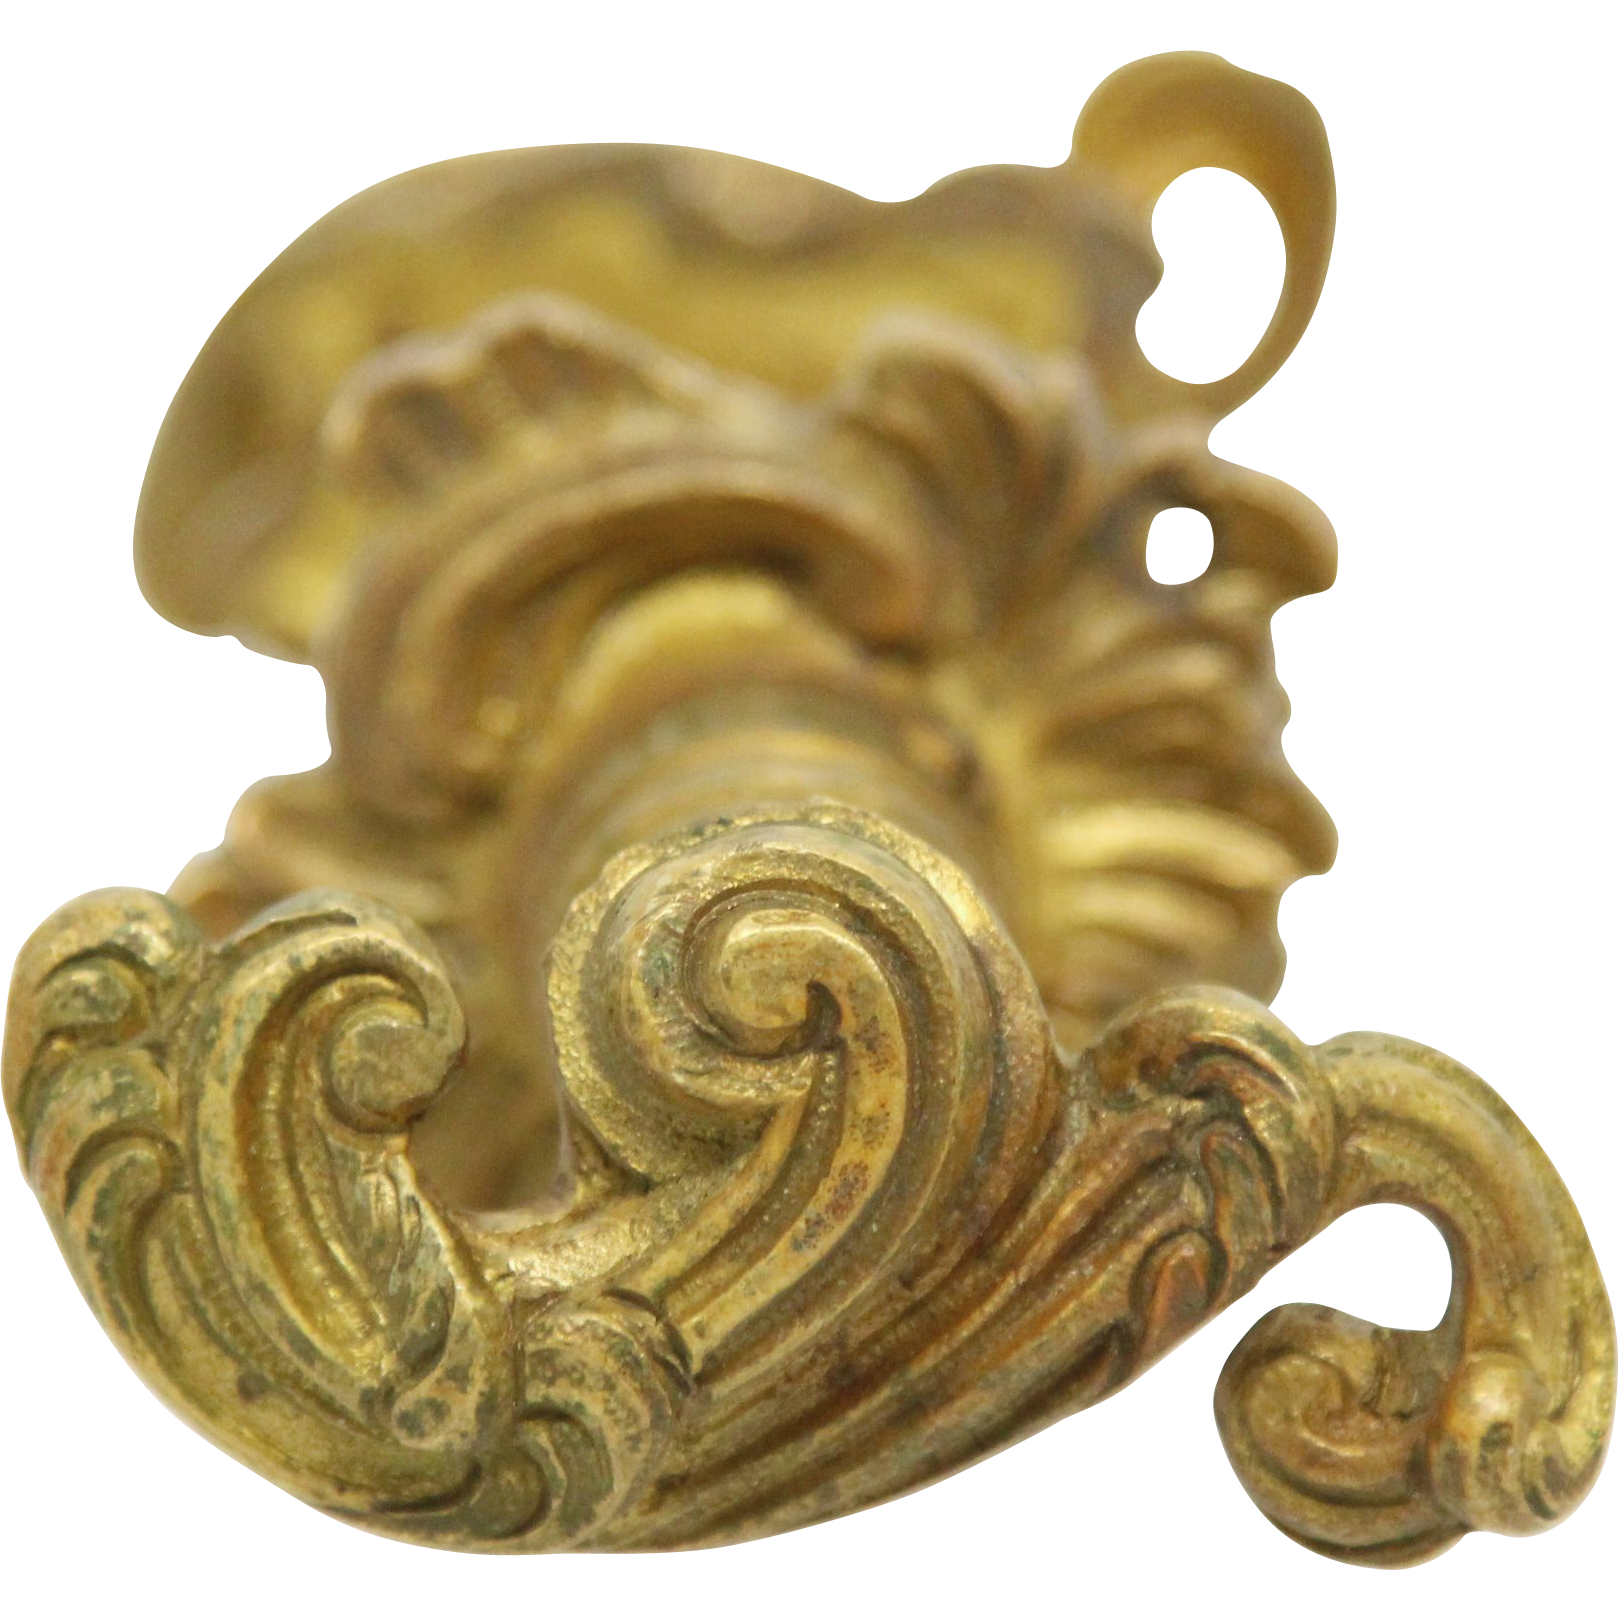 French gilded lever knob set with matching rosettes